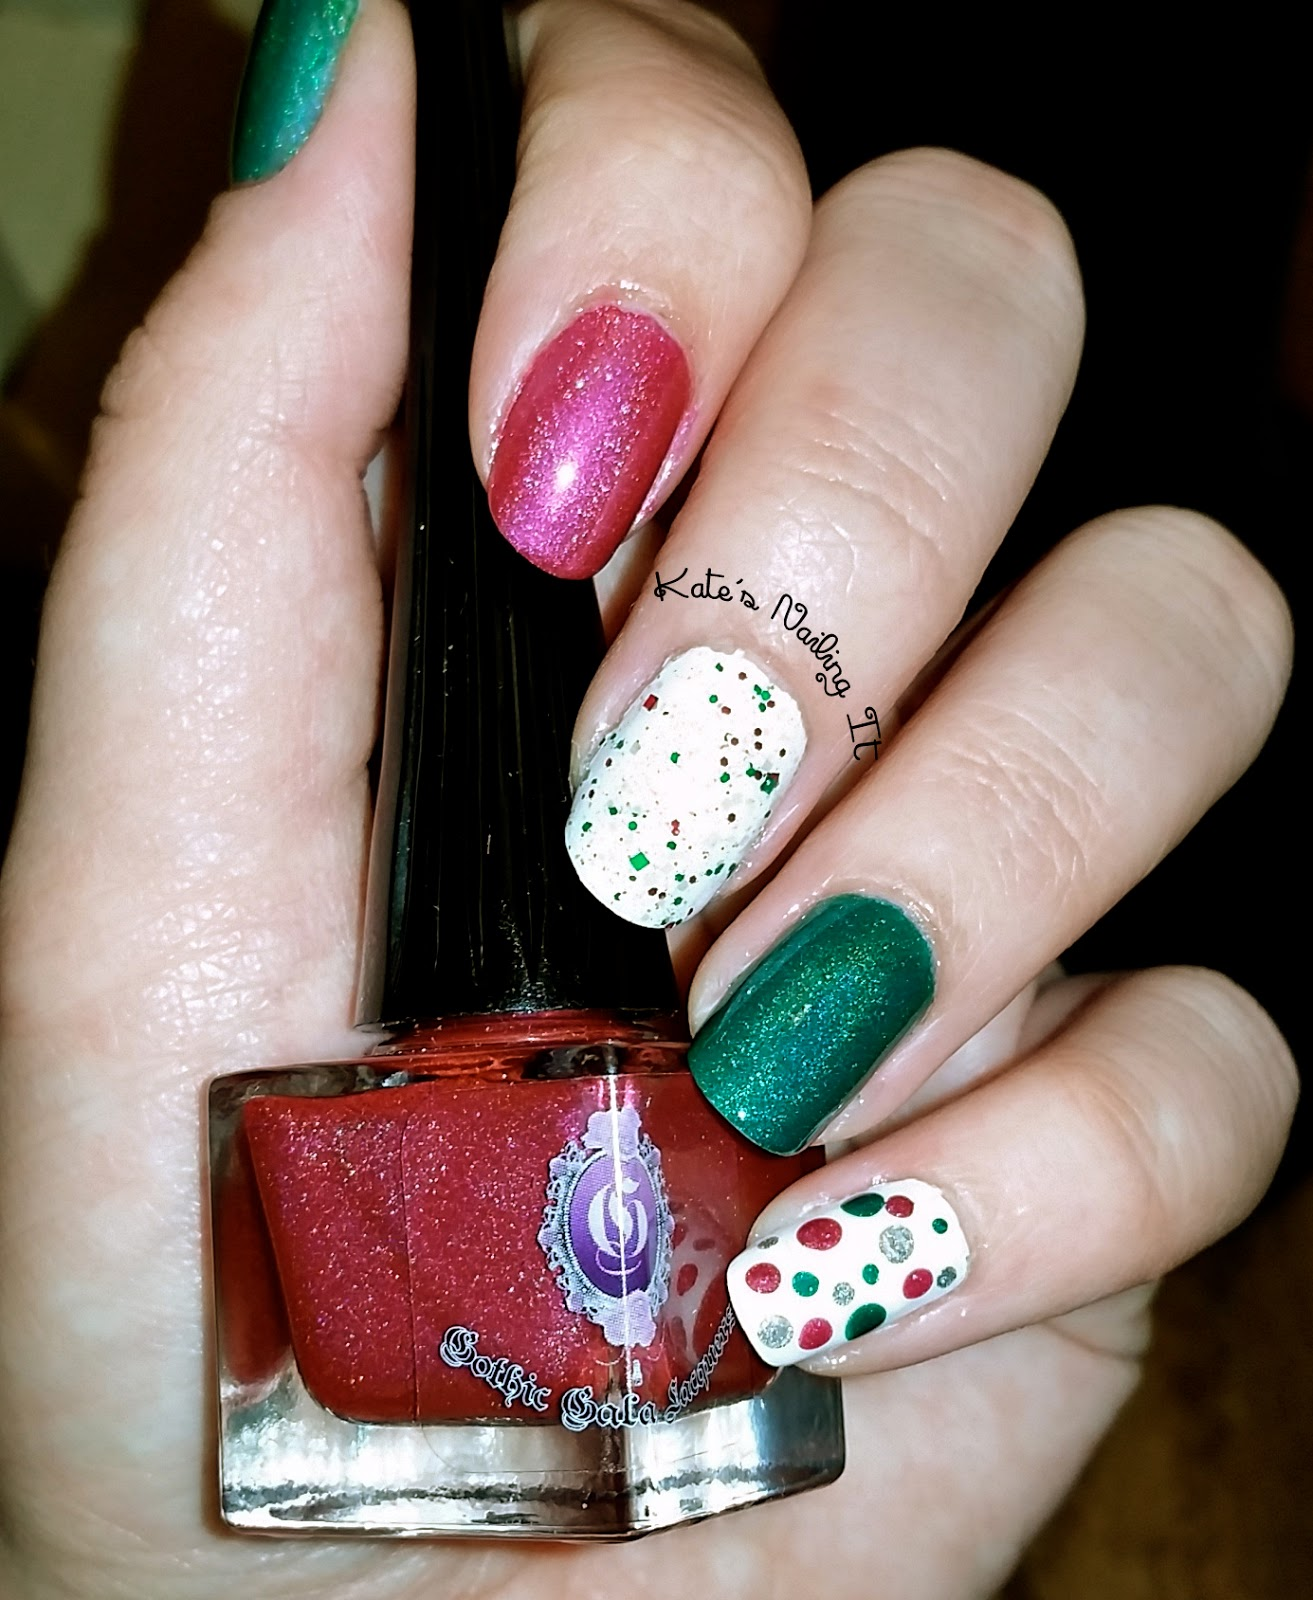 The christmas nail ornament - My Middle Finger Nail Was Inspired By One Of The Christmas Ornaments That I Made I Used Sugar Cube As A Background And Topped It With Twisted Colors Elf